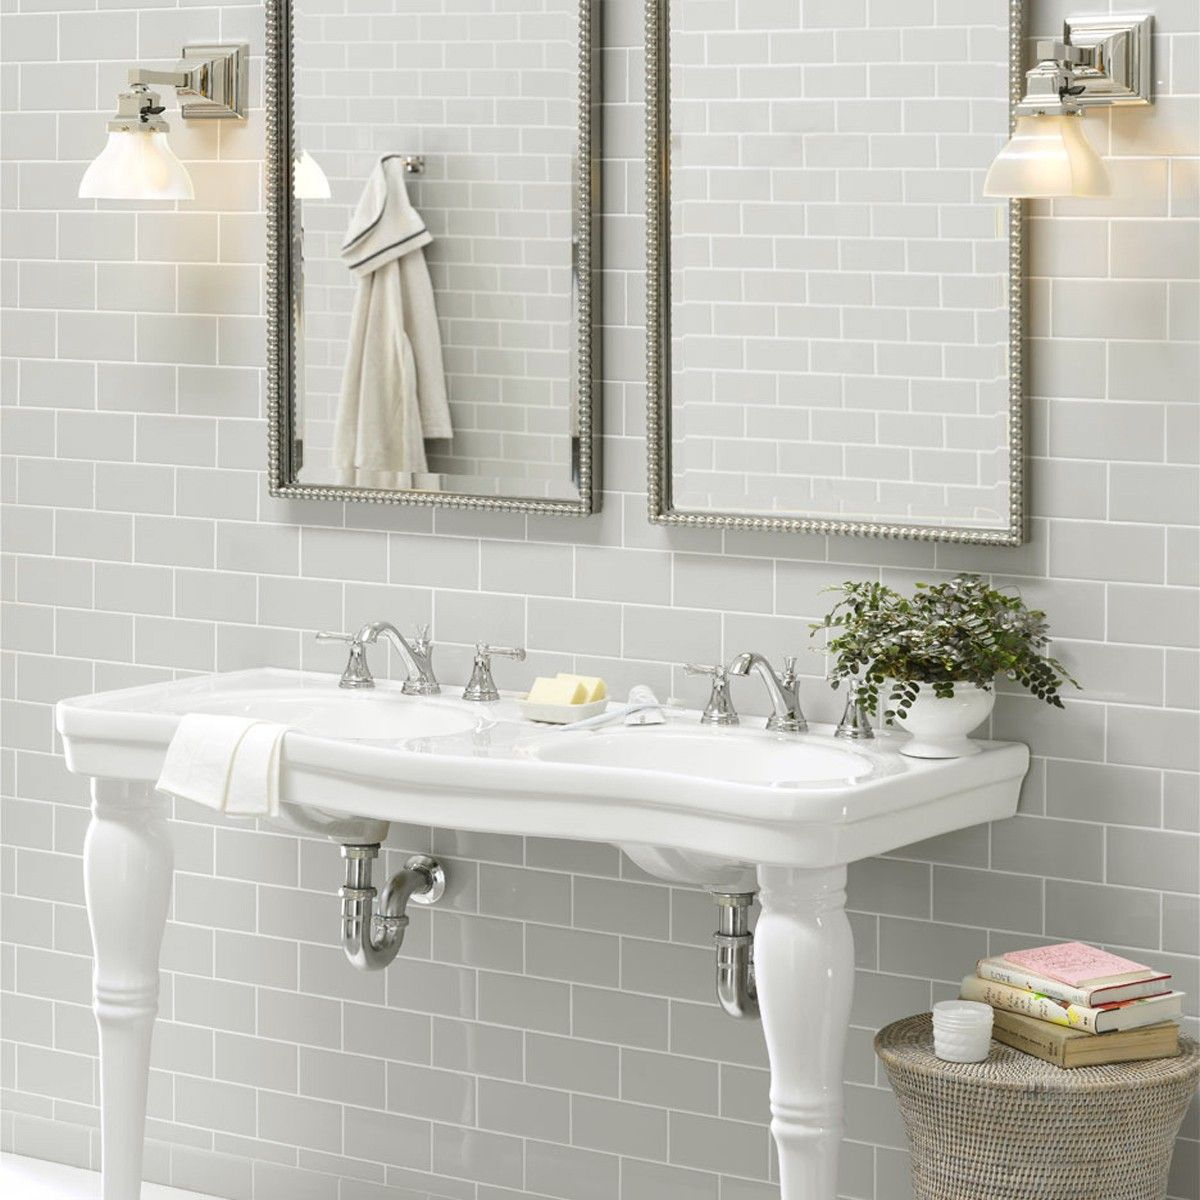 Light Grey Tiles For Bathroom: Light Grey Wall Tiles - Google Search